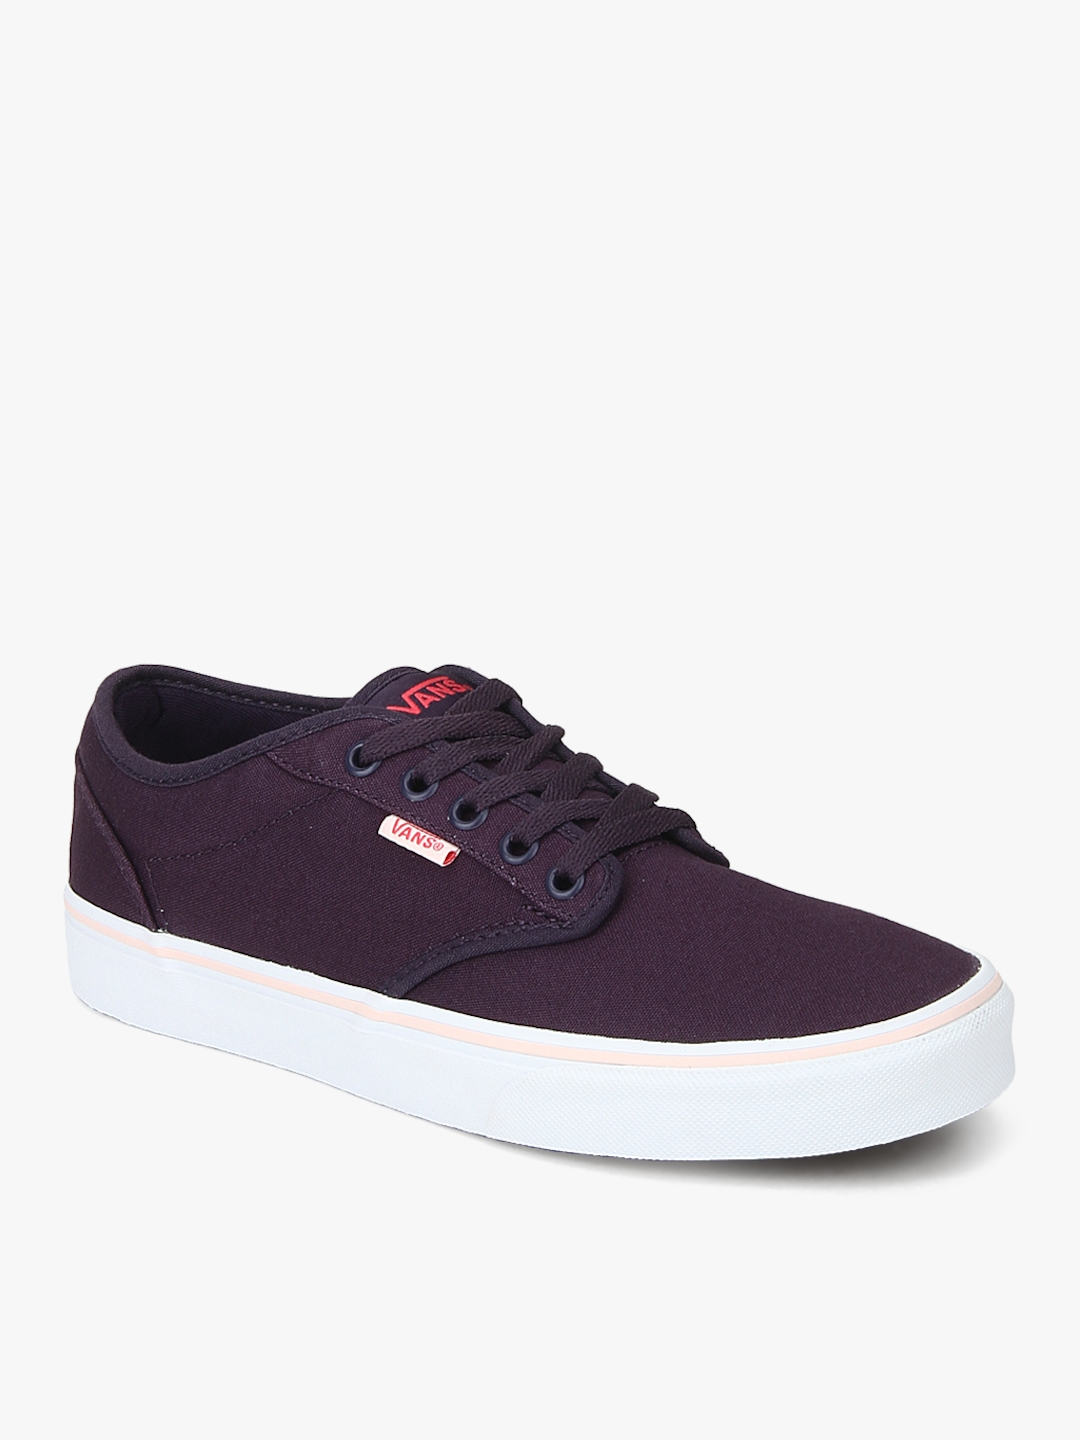 66c658e4ec Buy Vans Women Purple Atwood Sneakers - Casual Shoes for Women ...